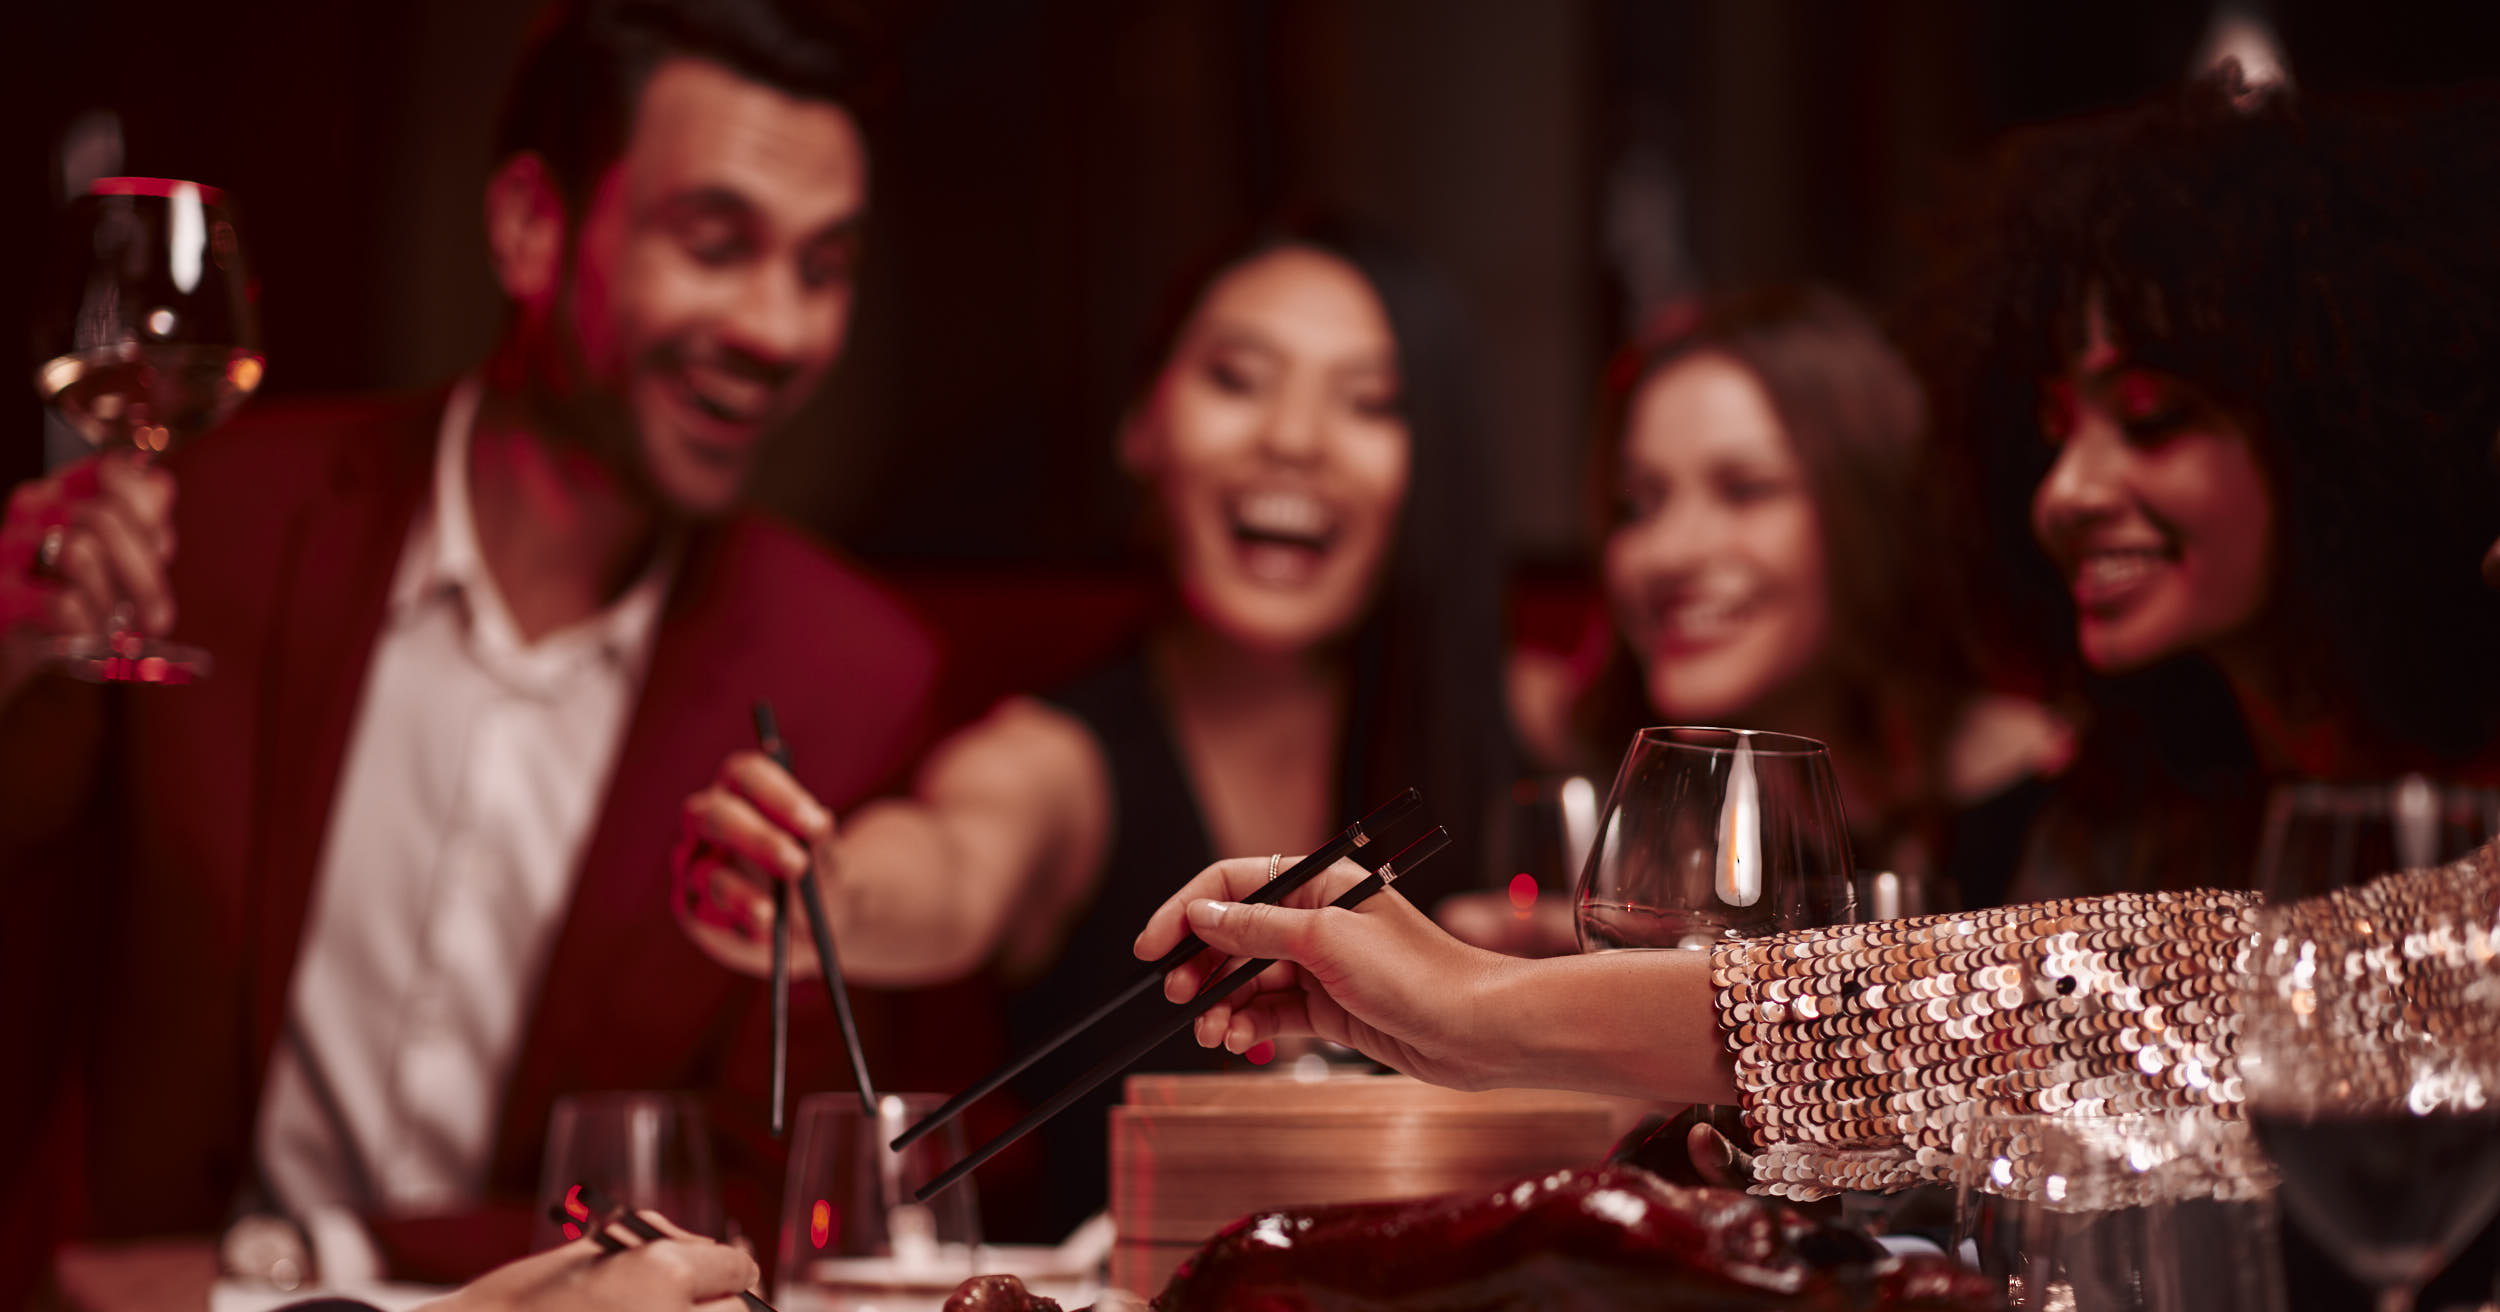 luxury hotel  photographer matthew lloyd shoots lifestyle imagery of models for peninsula paris for their food and drinks advertising photography